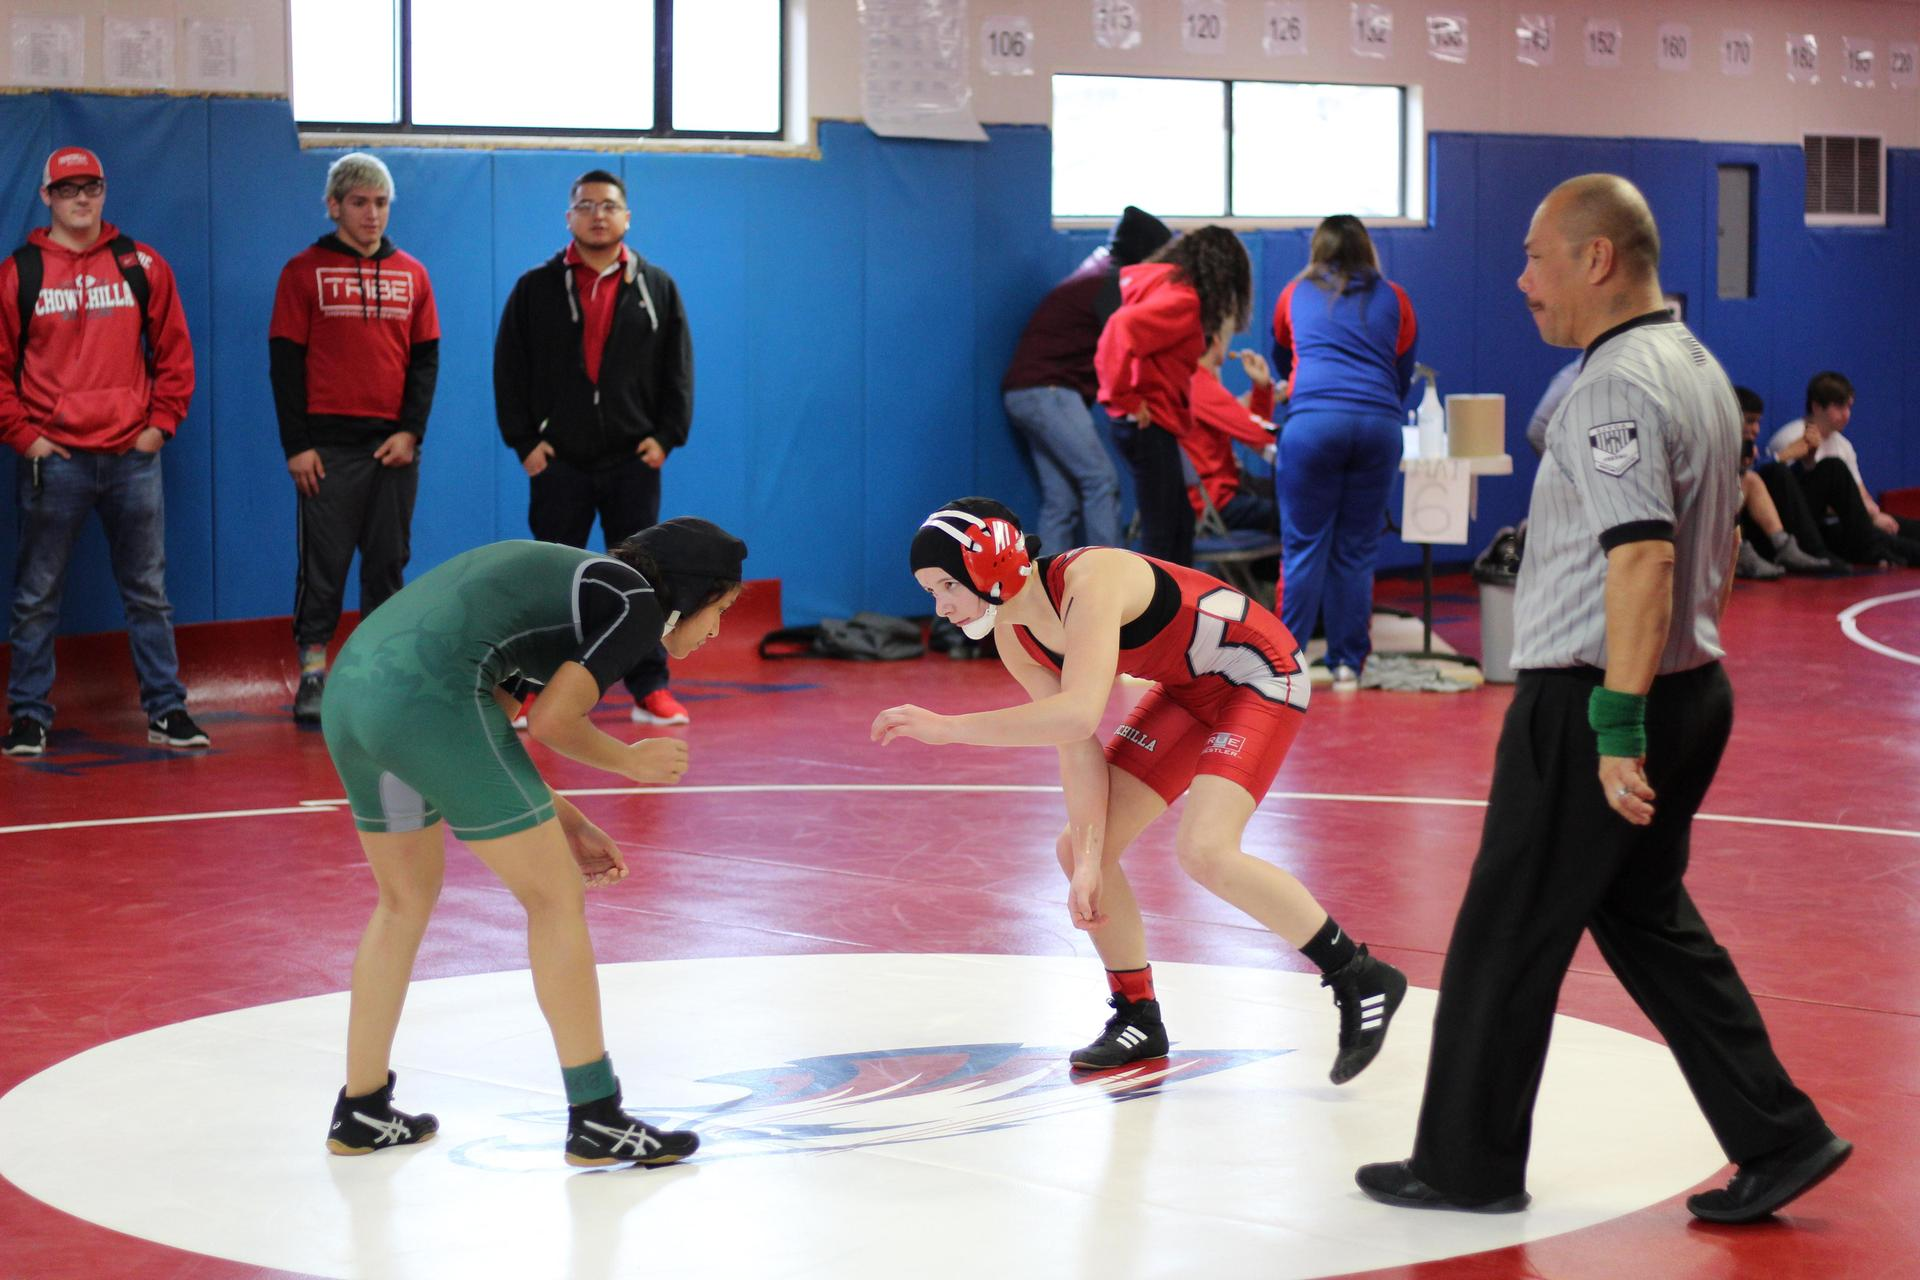 Chowchilla High athletes wrestling at Firebaugh